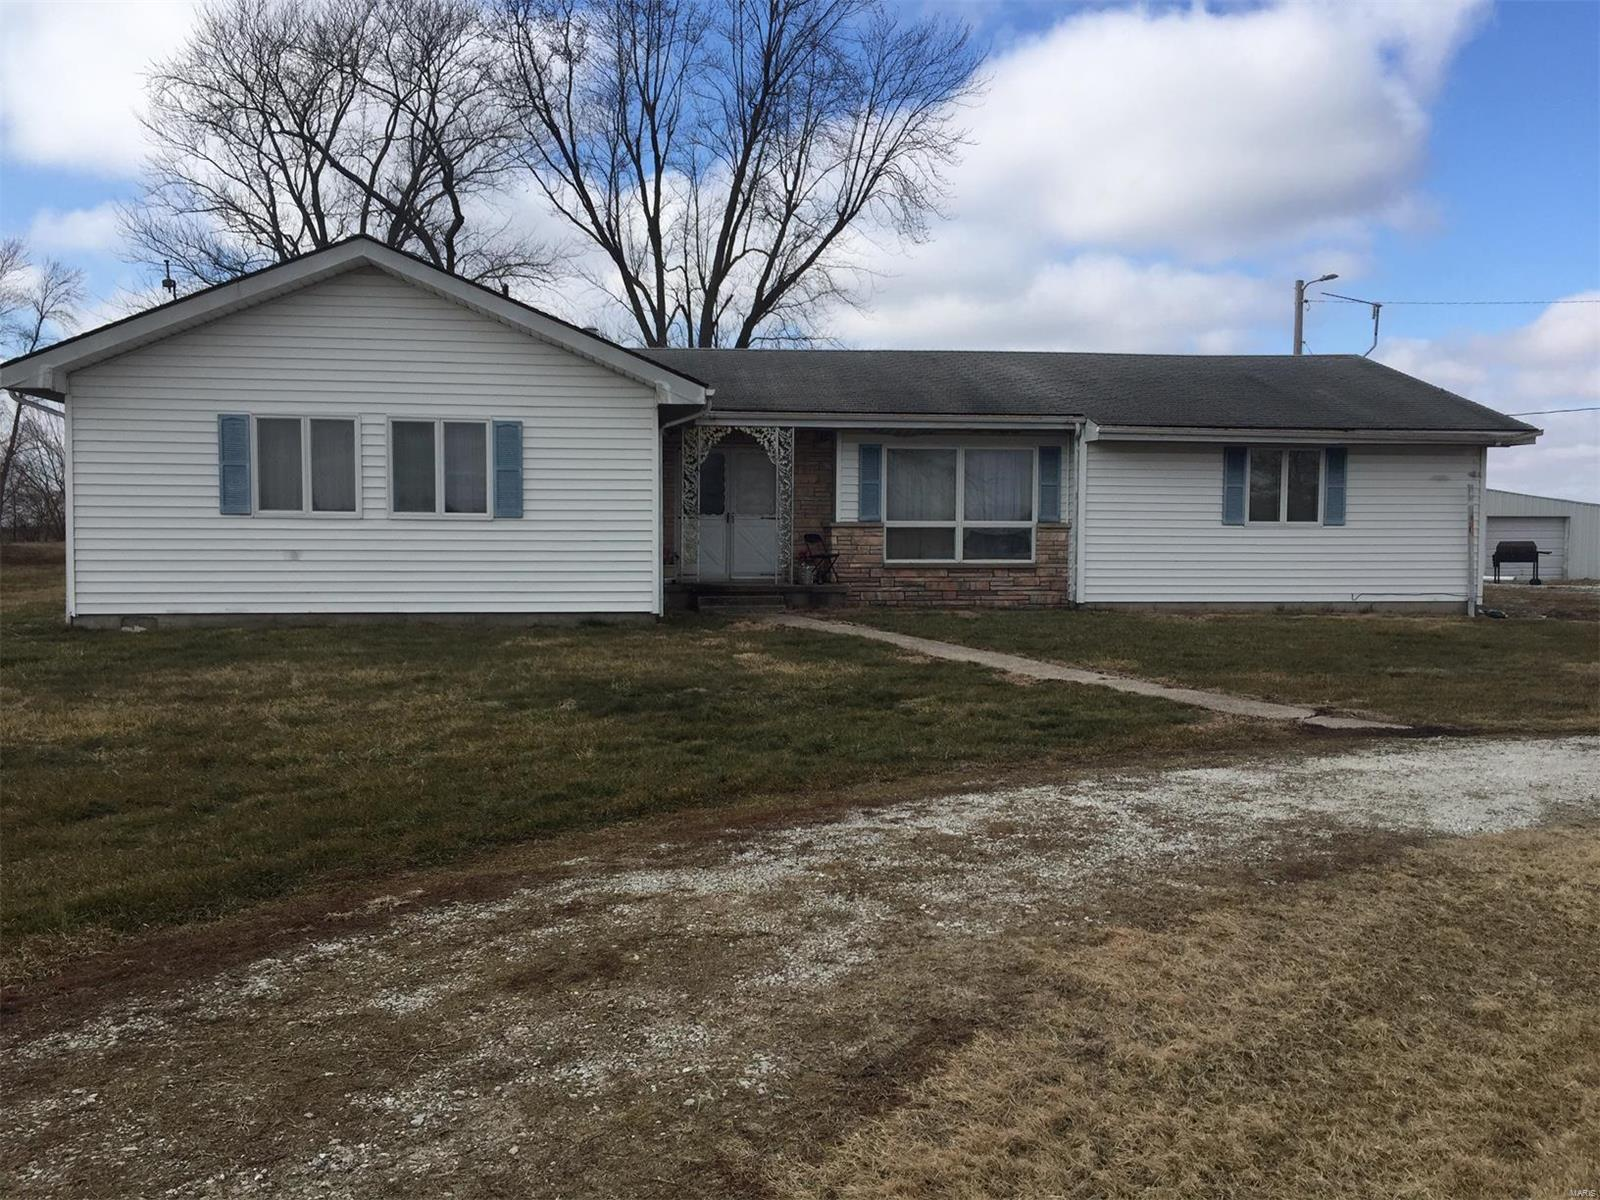 832 S US Hwy 67 Property Photo - Kane, IL real estate listing